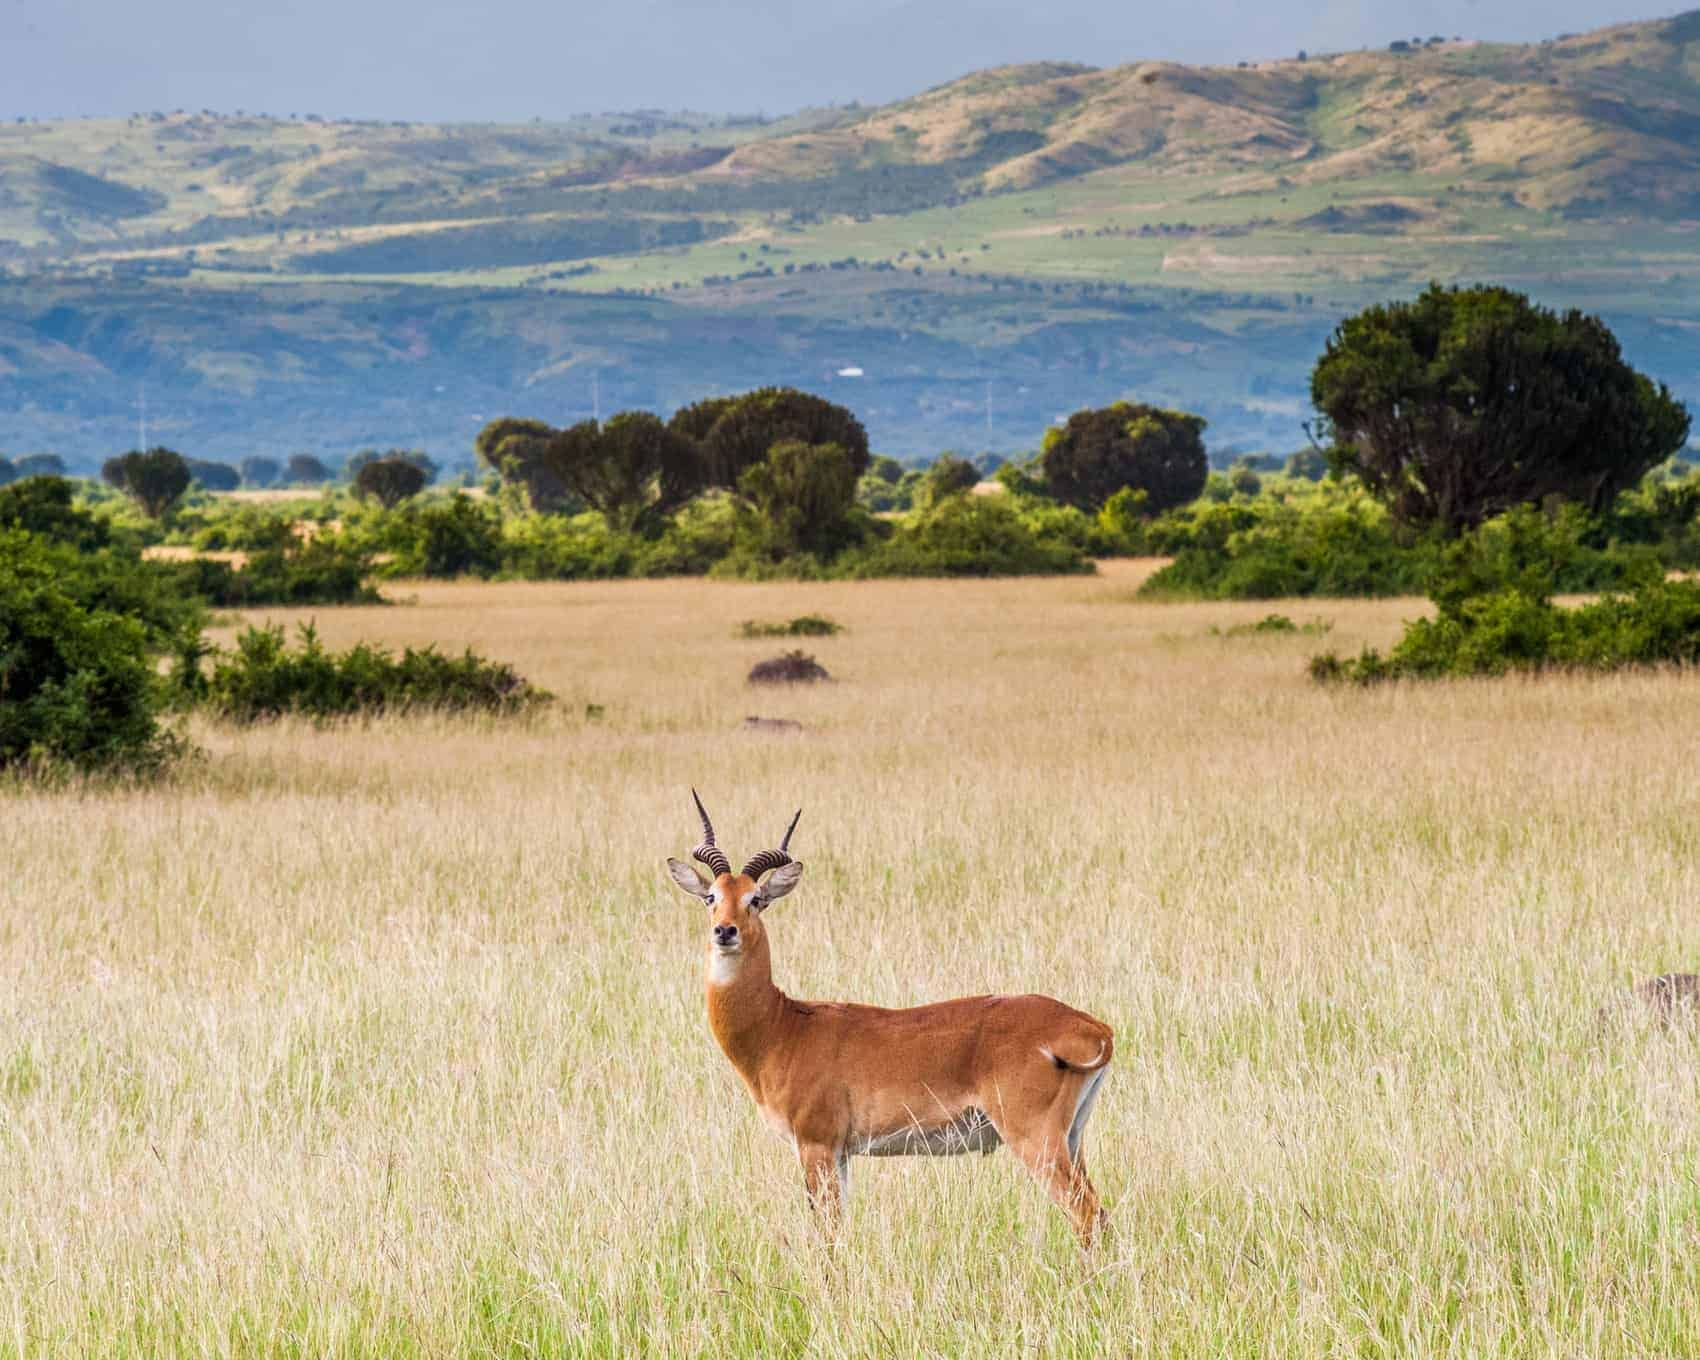 Cob Antelope in Queen Elizabeth National Park Uganda with the Rwenzori mountains in the background